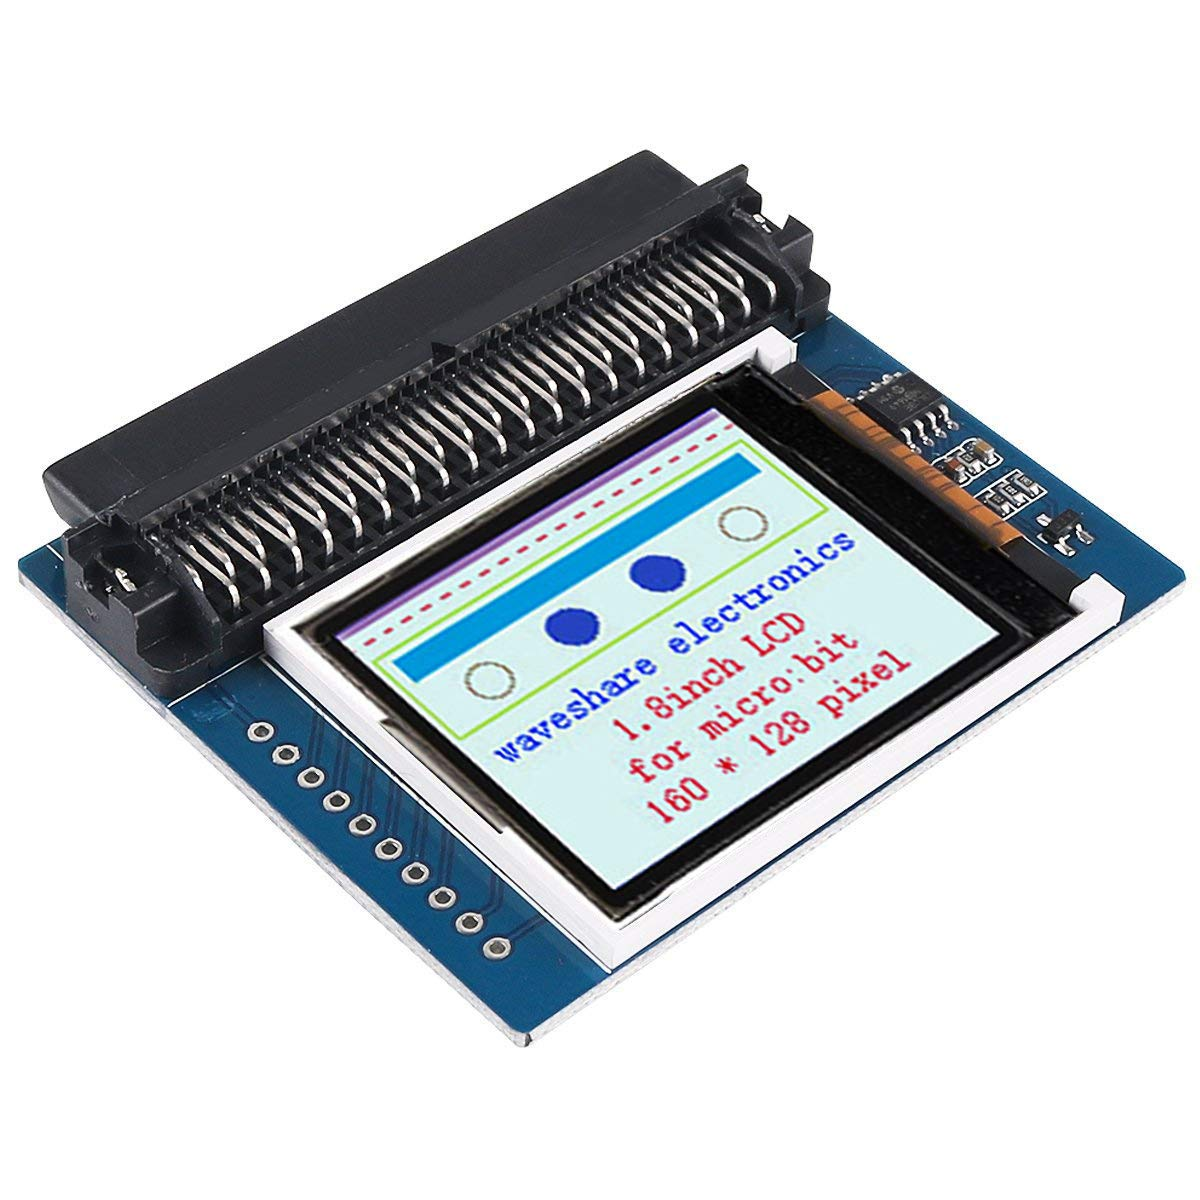 Onboard SRAM 23LC1024 160x128 Pixels with SPI Interface Capable of Displaying 65K Colors MakerFocus 1.8inch LCD for Micro Bit Can be Used as Video Memory Colorful Display Screen Module